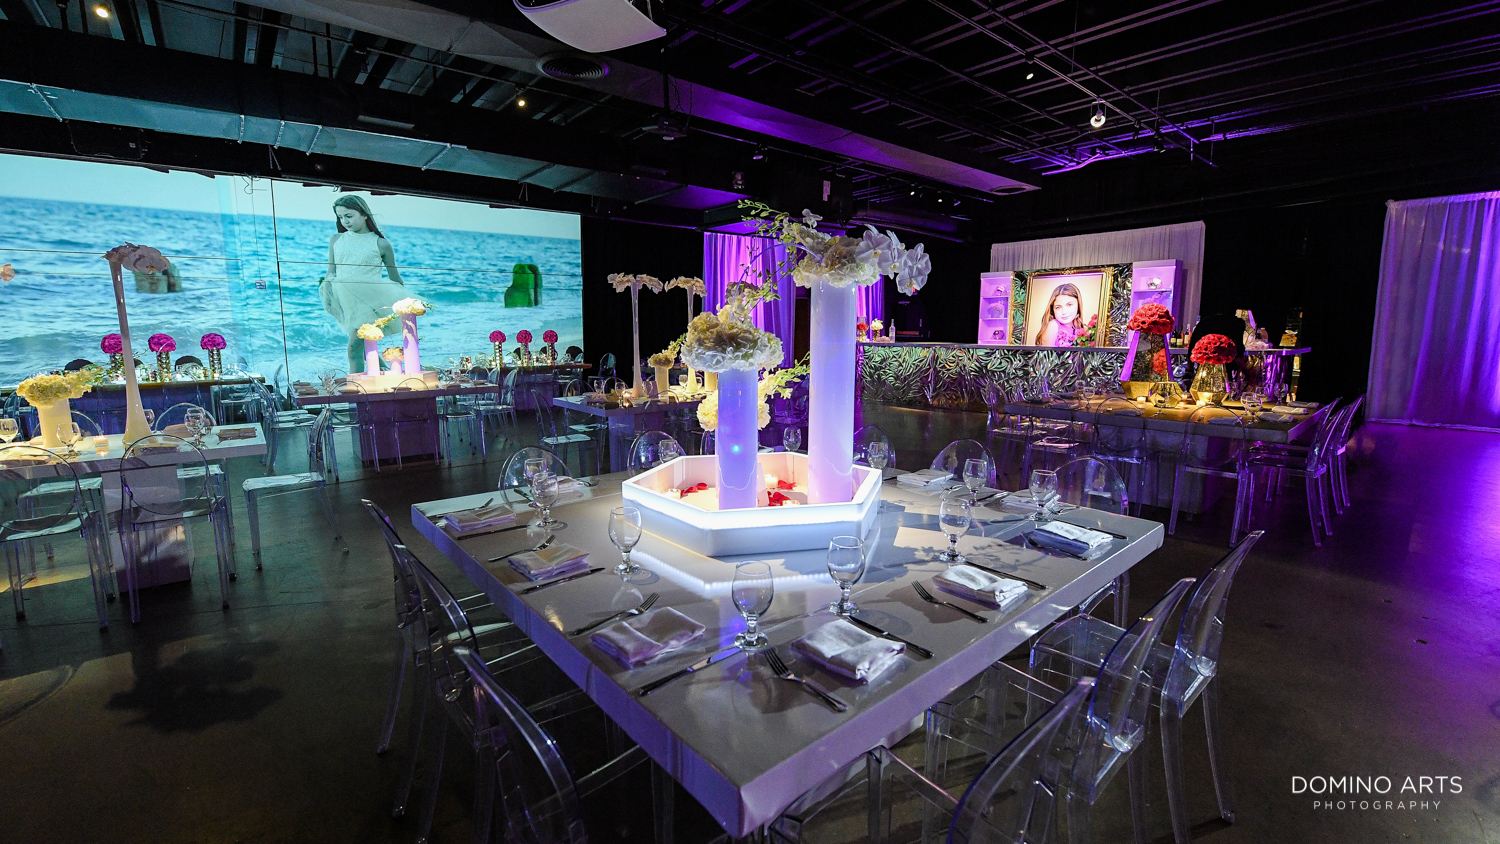 Modern Mitzvah decor pictures at Gallery of Amazing Things